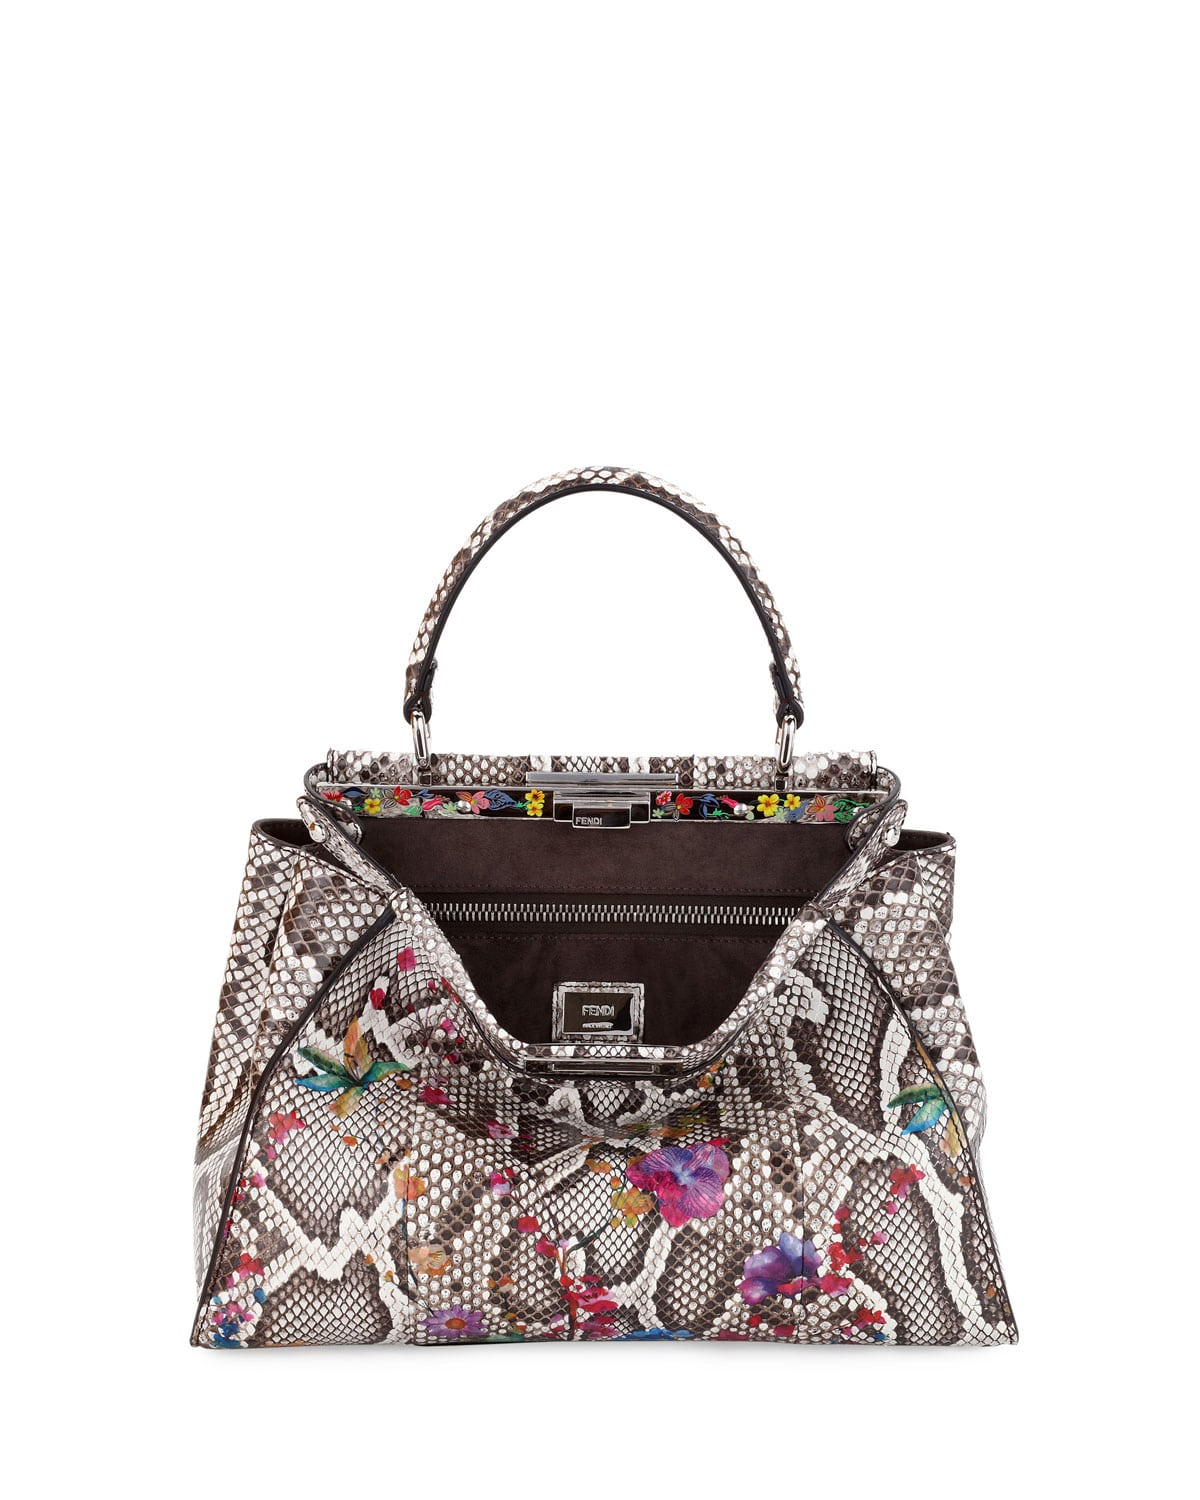 Fendi Resort 2017 Bag Collection Featuring Floral Bags  a4baf618416ea